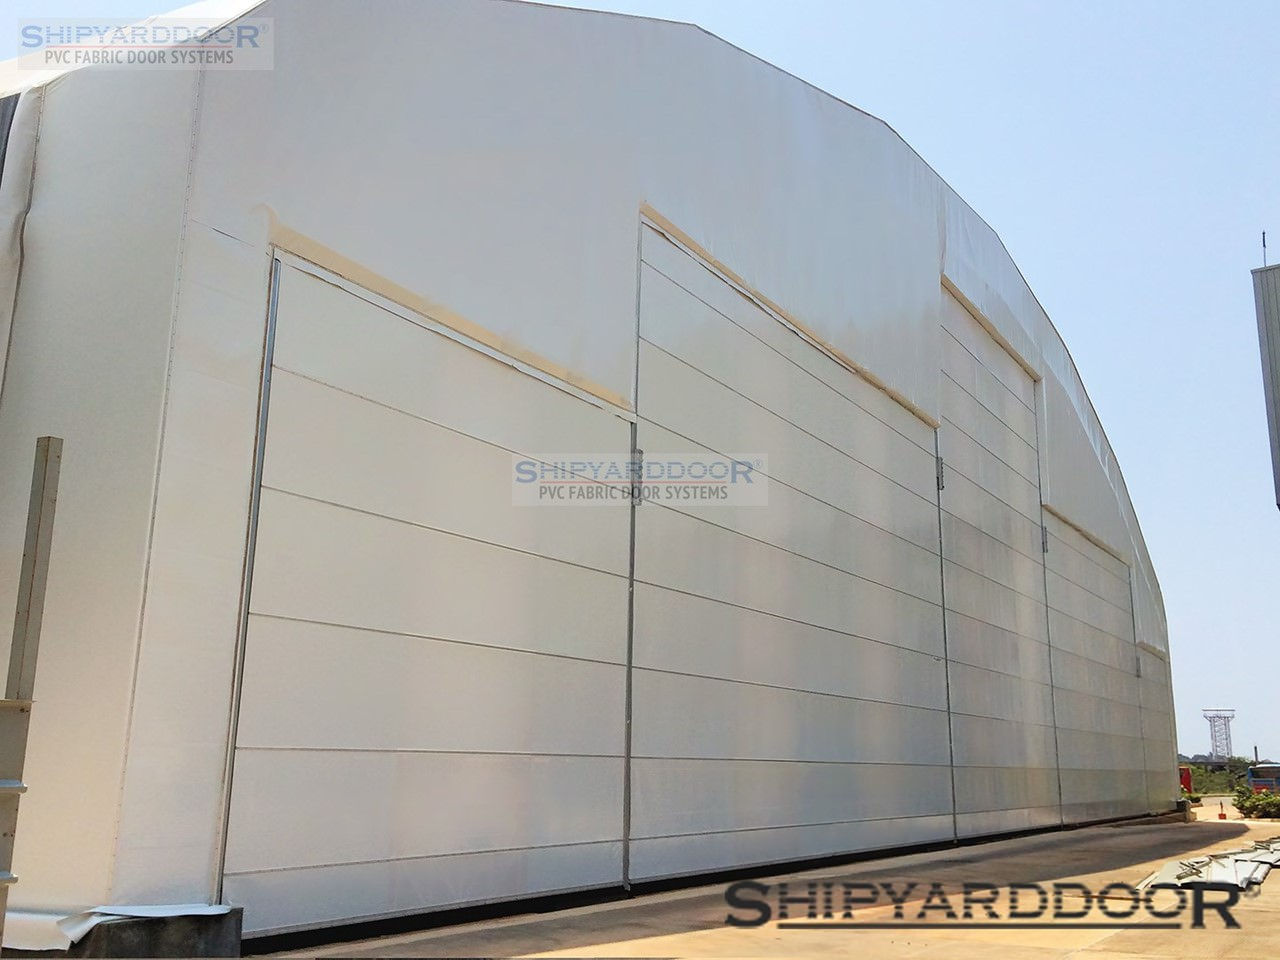 mega hangar door en shipyarddoor